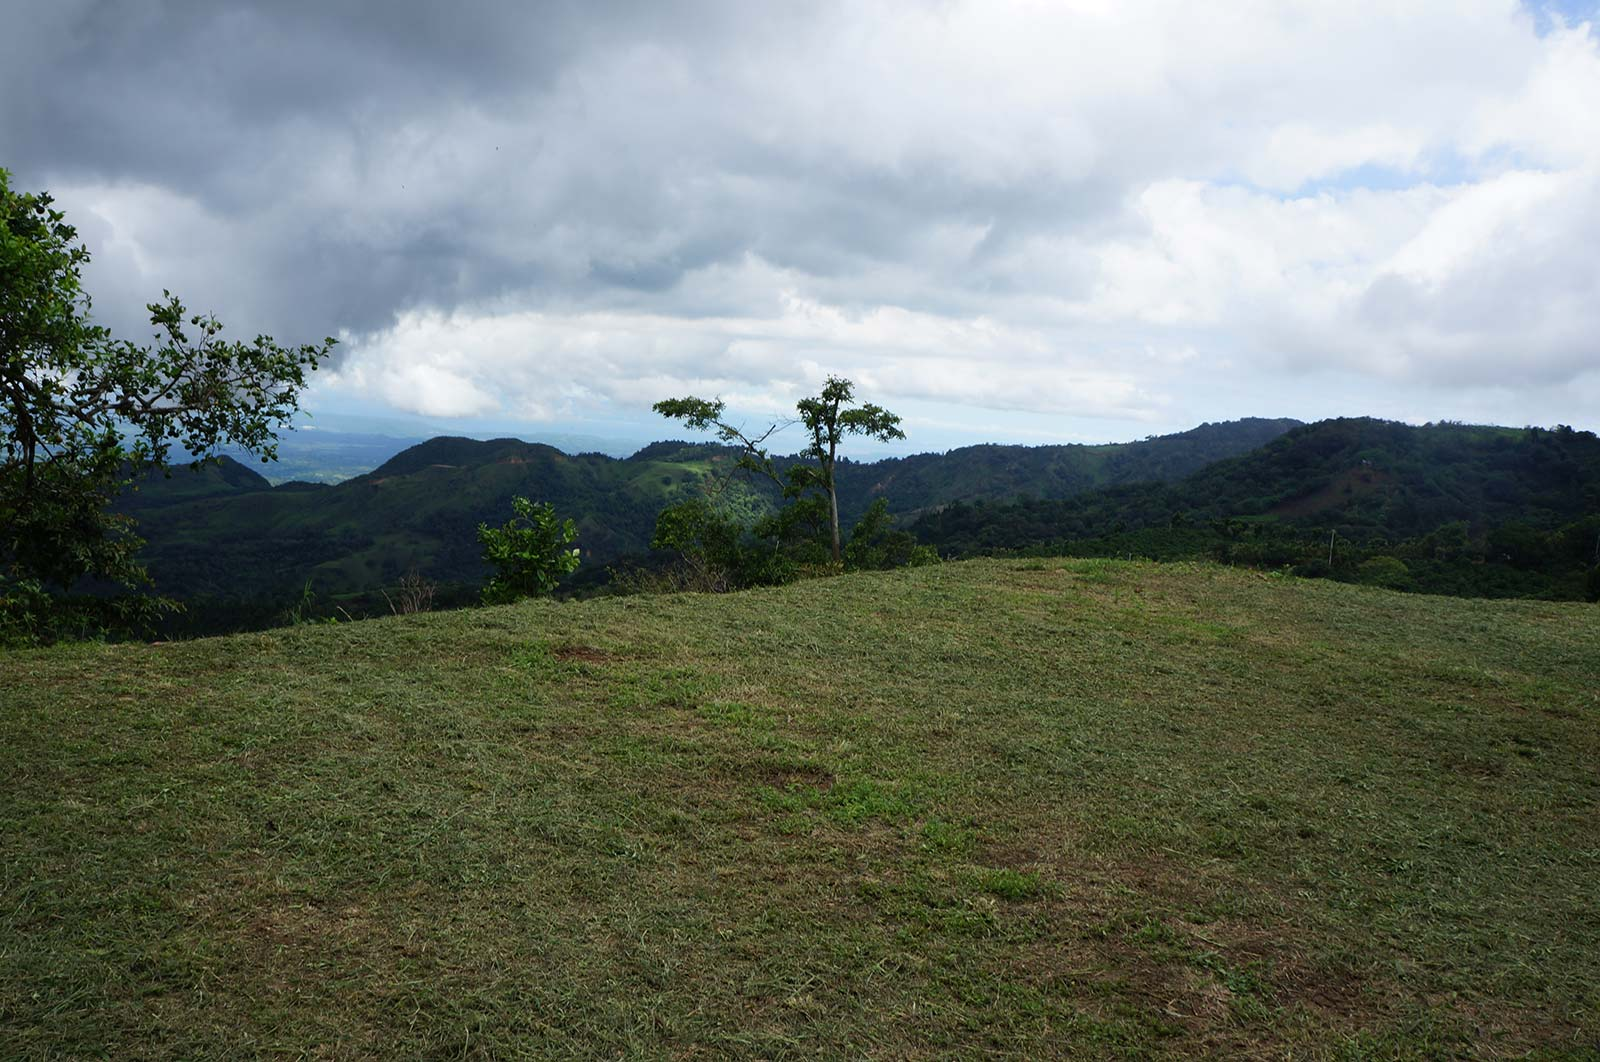 hectares,property,specialty, coffee plantation,plants,lots,located,mountains